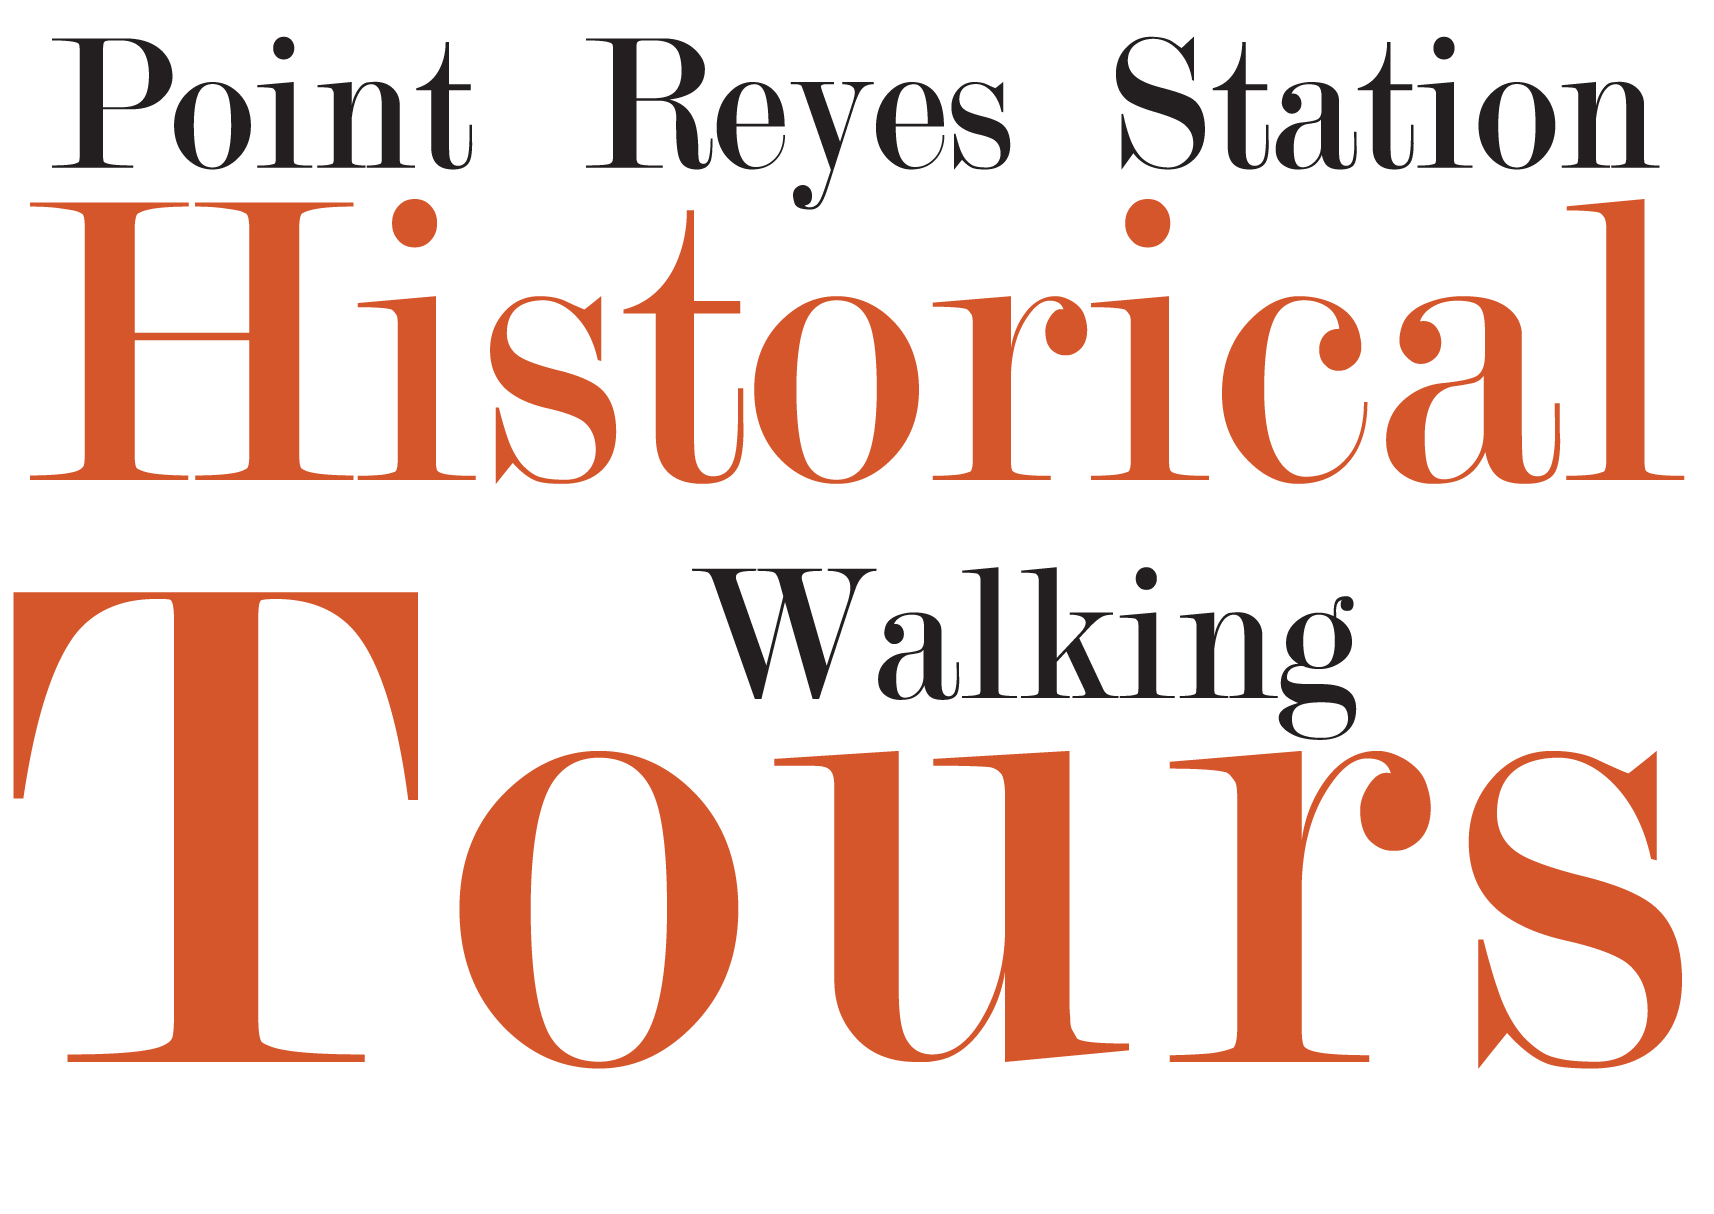 Point Reyes Station Historical Walking Tours